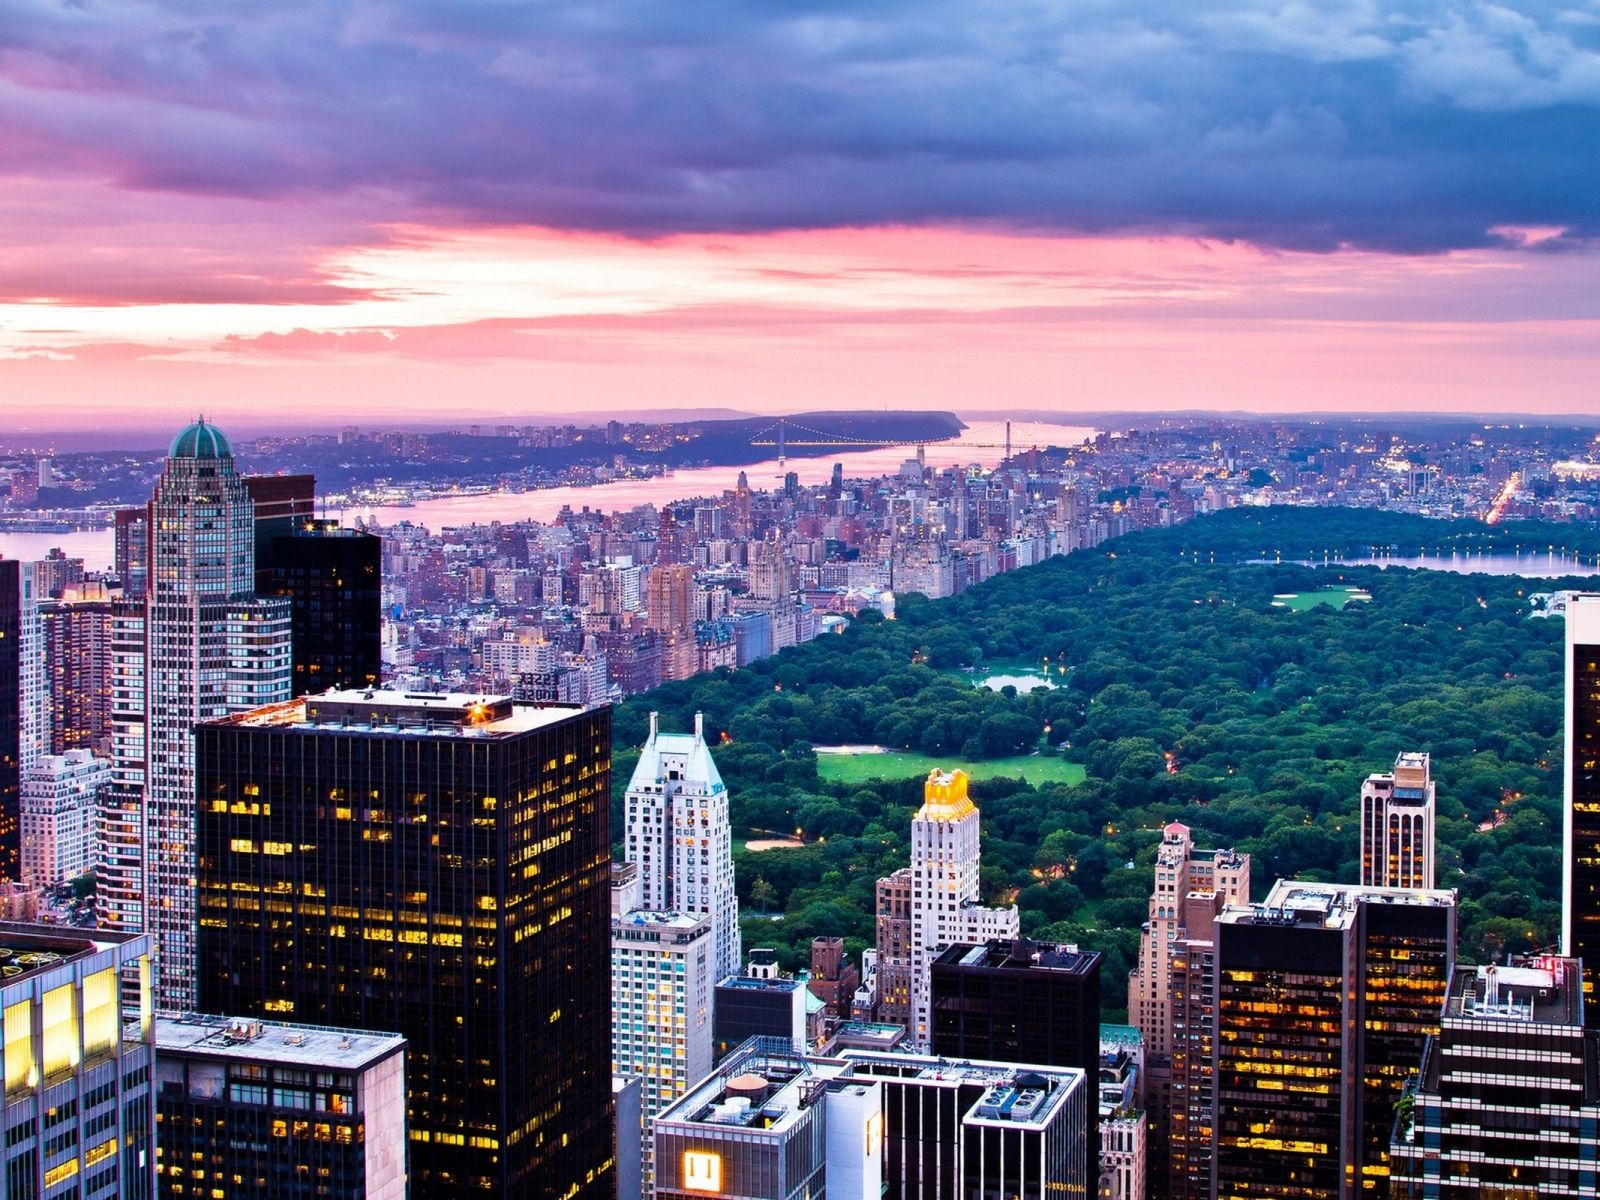 1600x1200 Wallpaper New York City Night Buildings Sky View From Above Centralnyj Park Reka Oazis